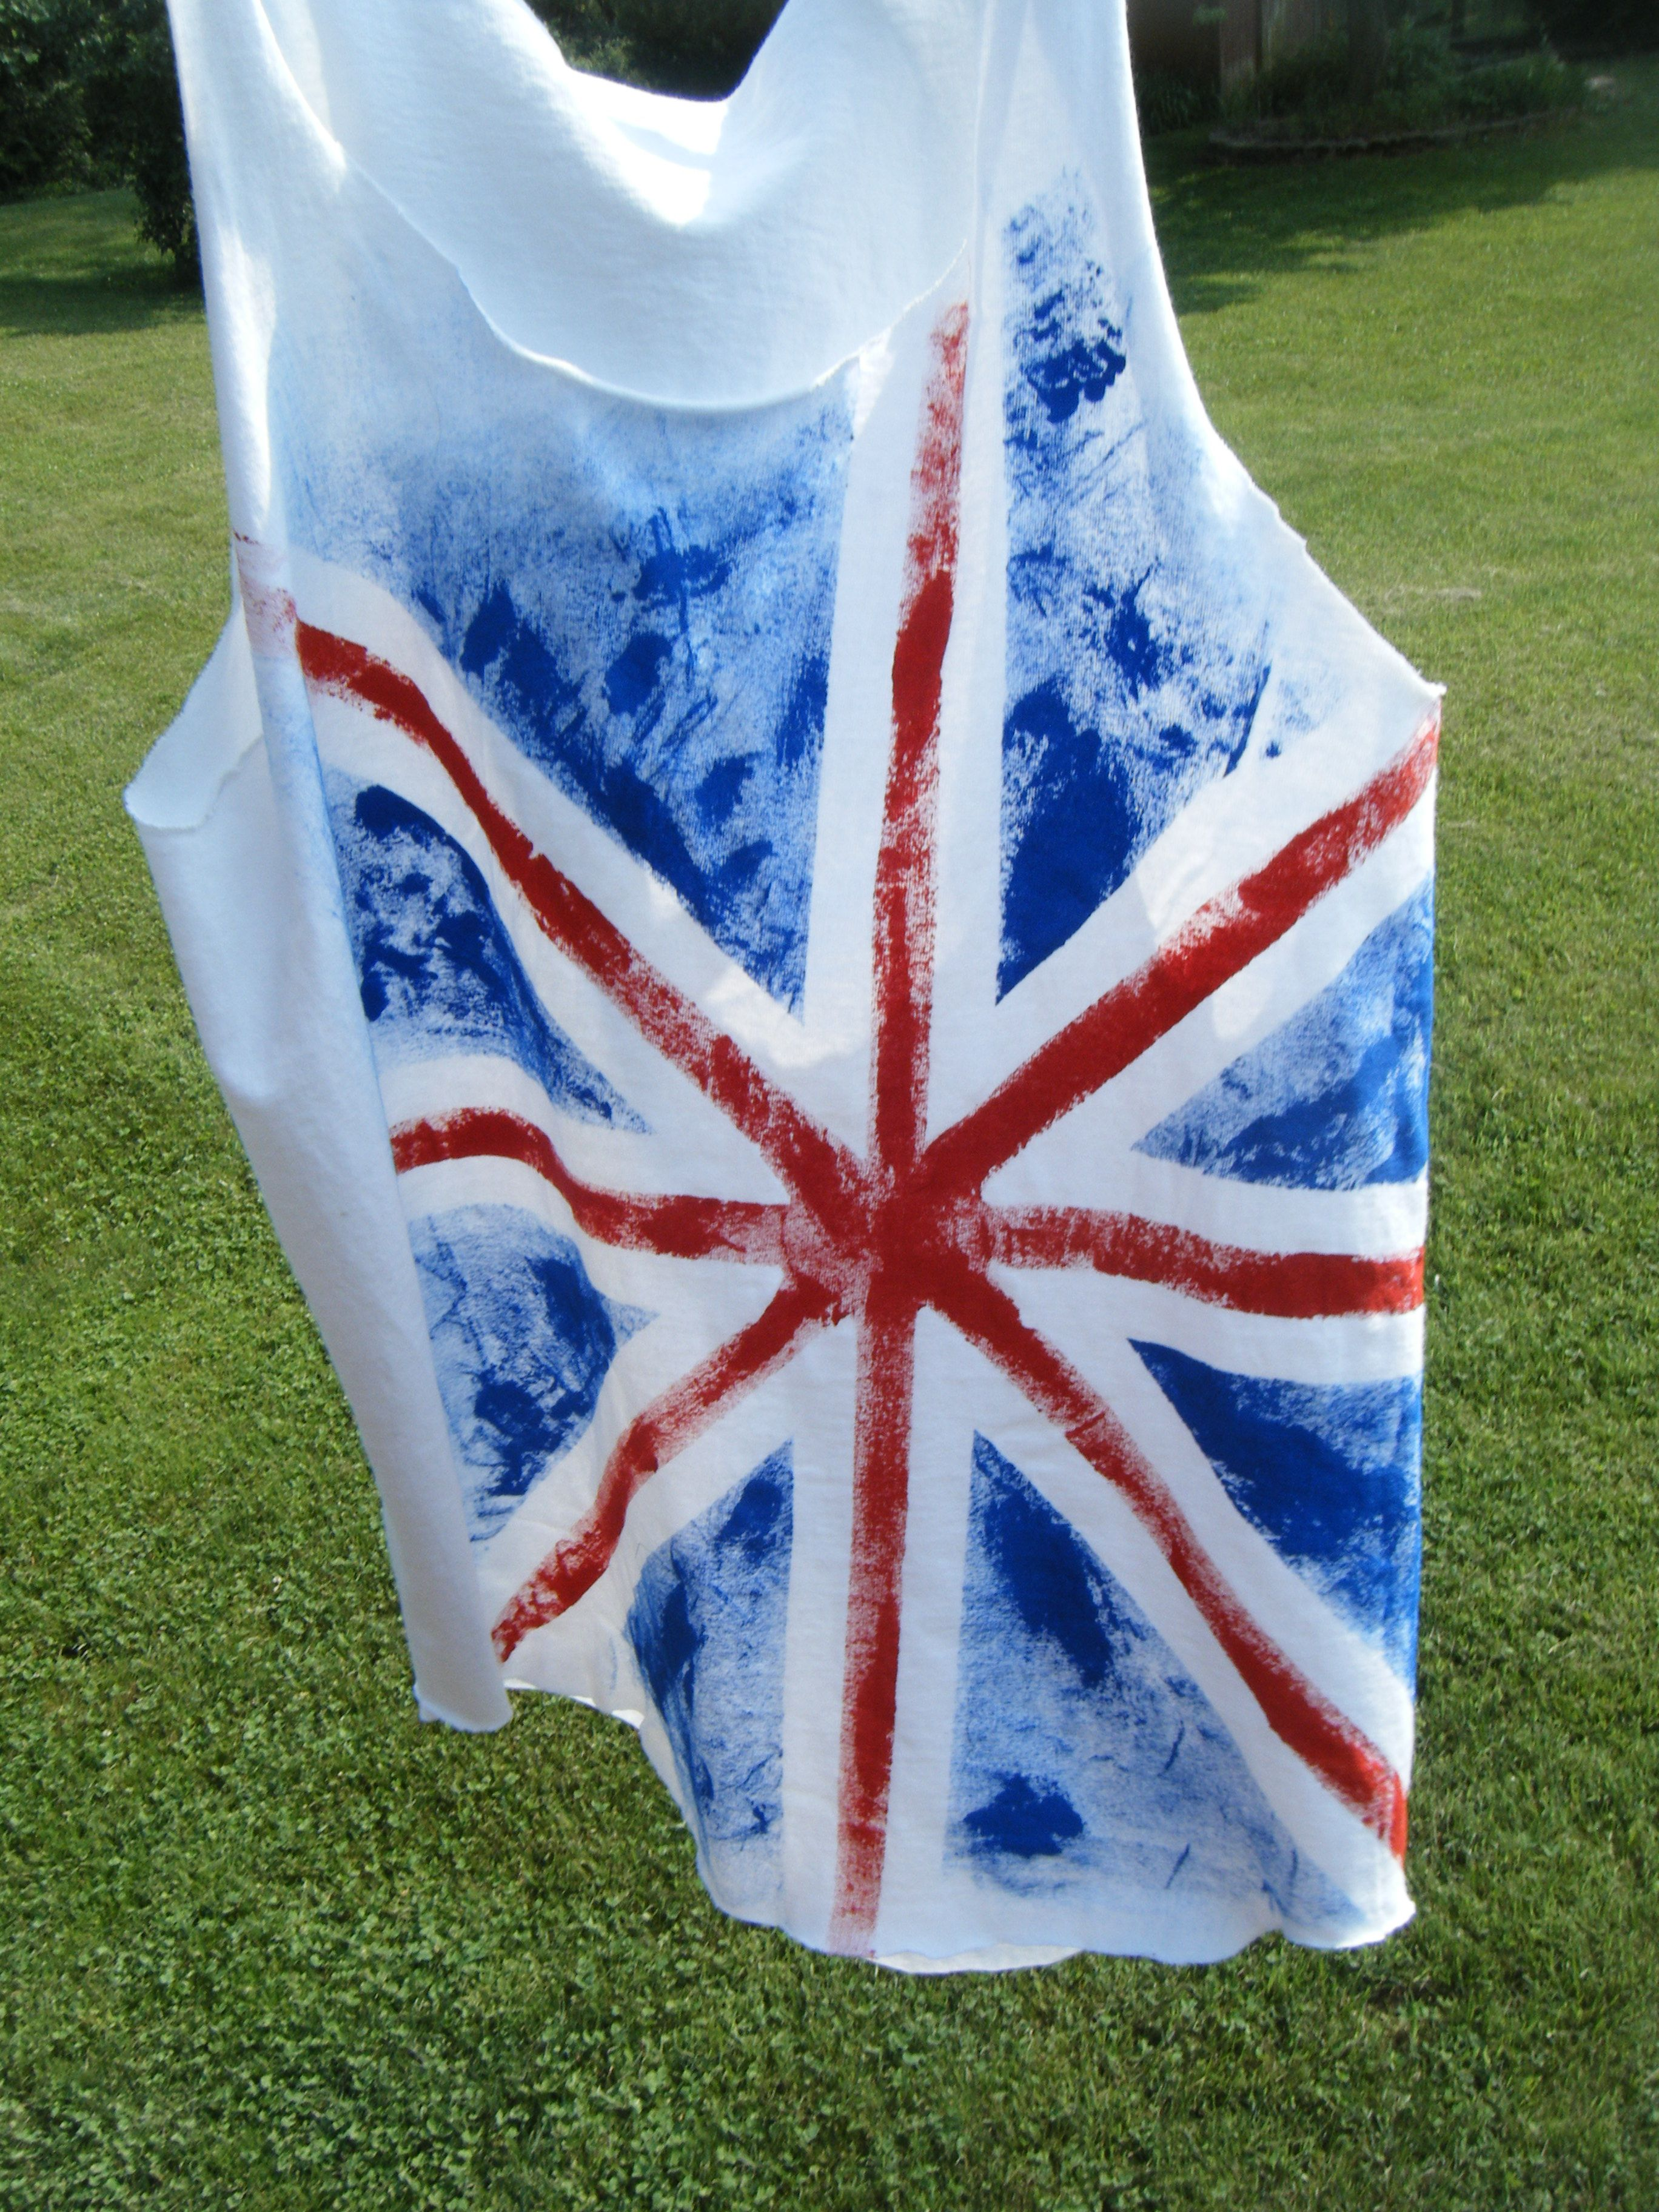 6638ed59 DIY British flag shirt! Easy! All you need is waterproof paint, a cute  cropped tang top, and a ruler!